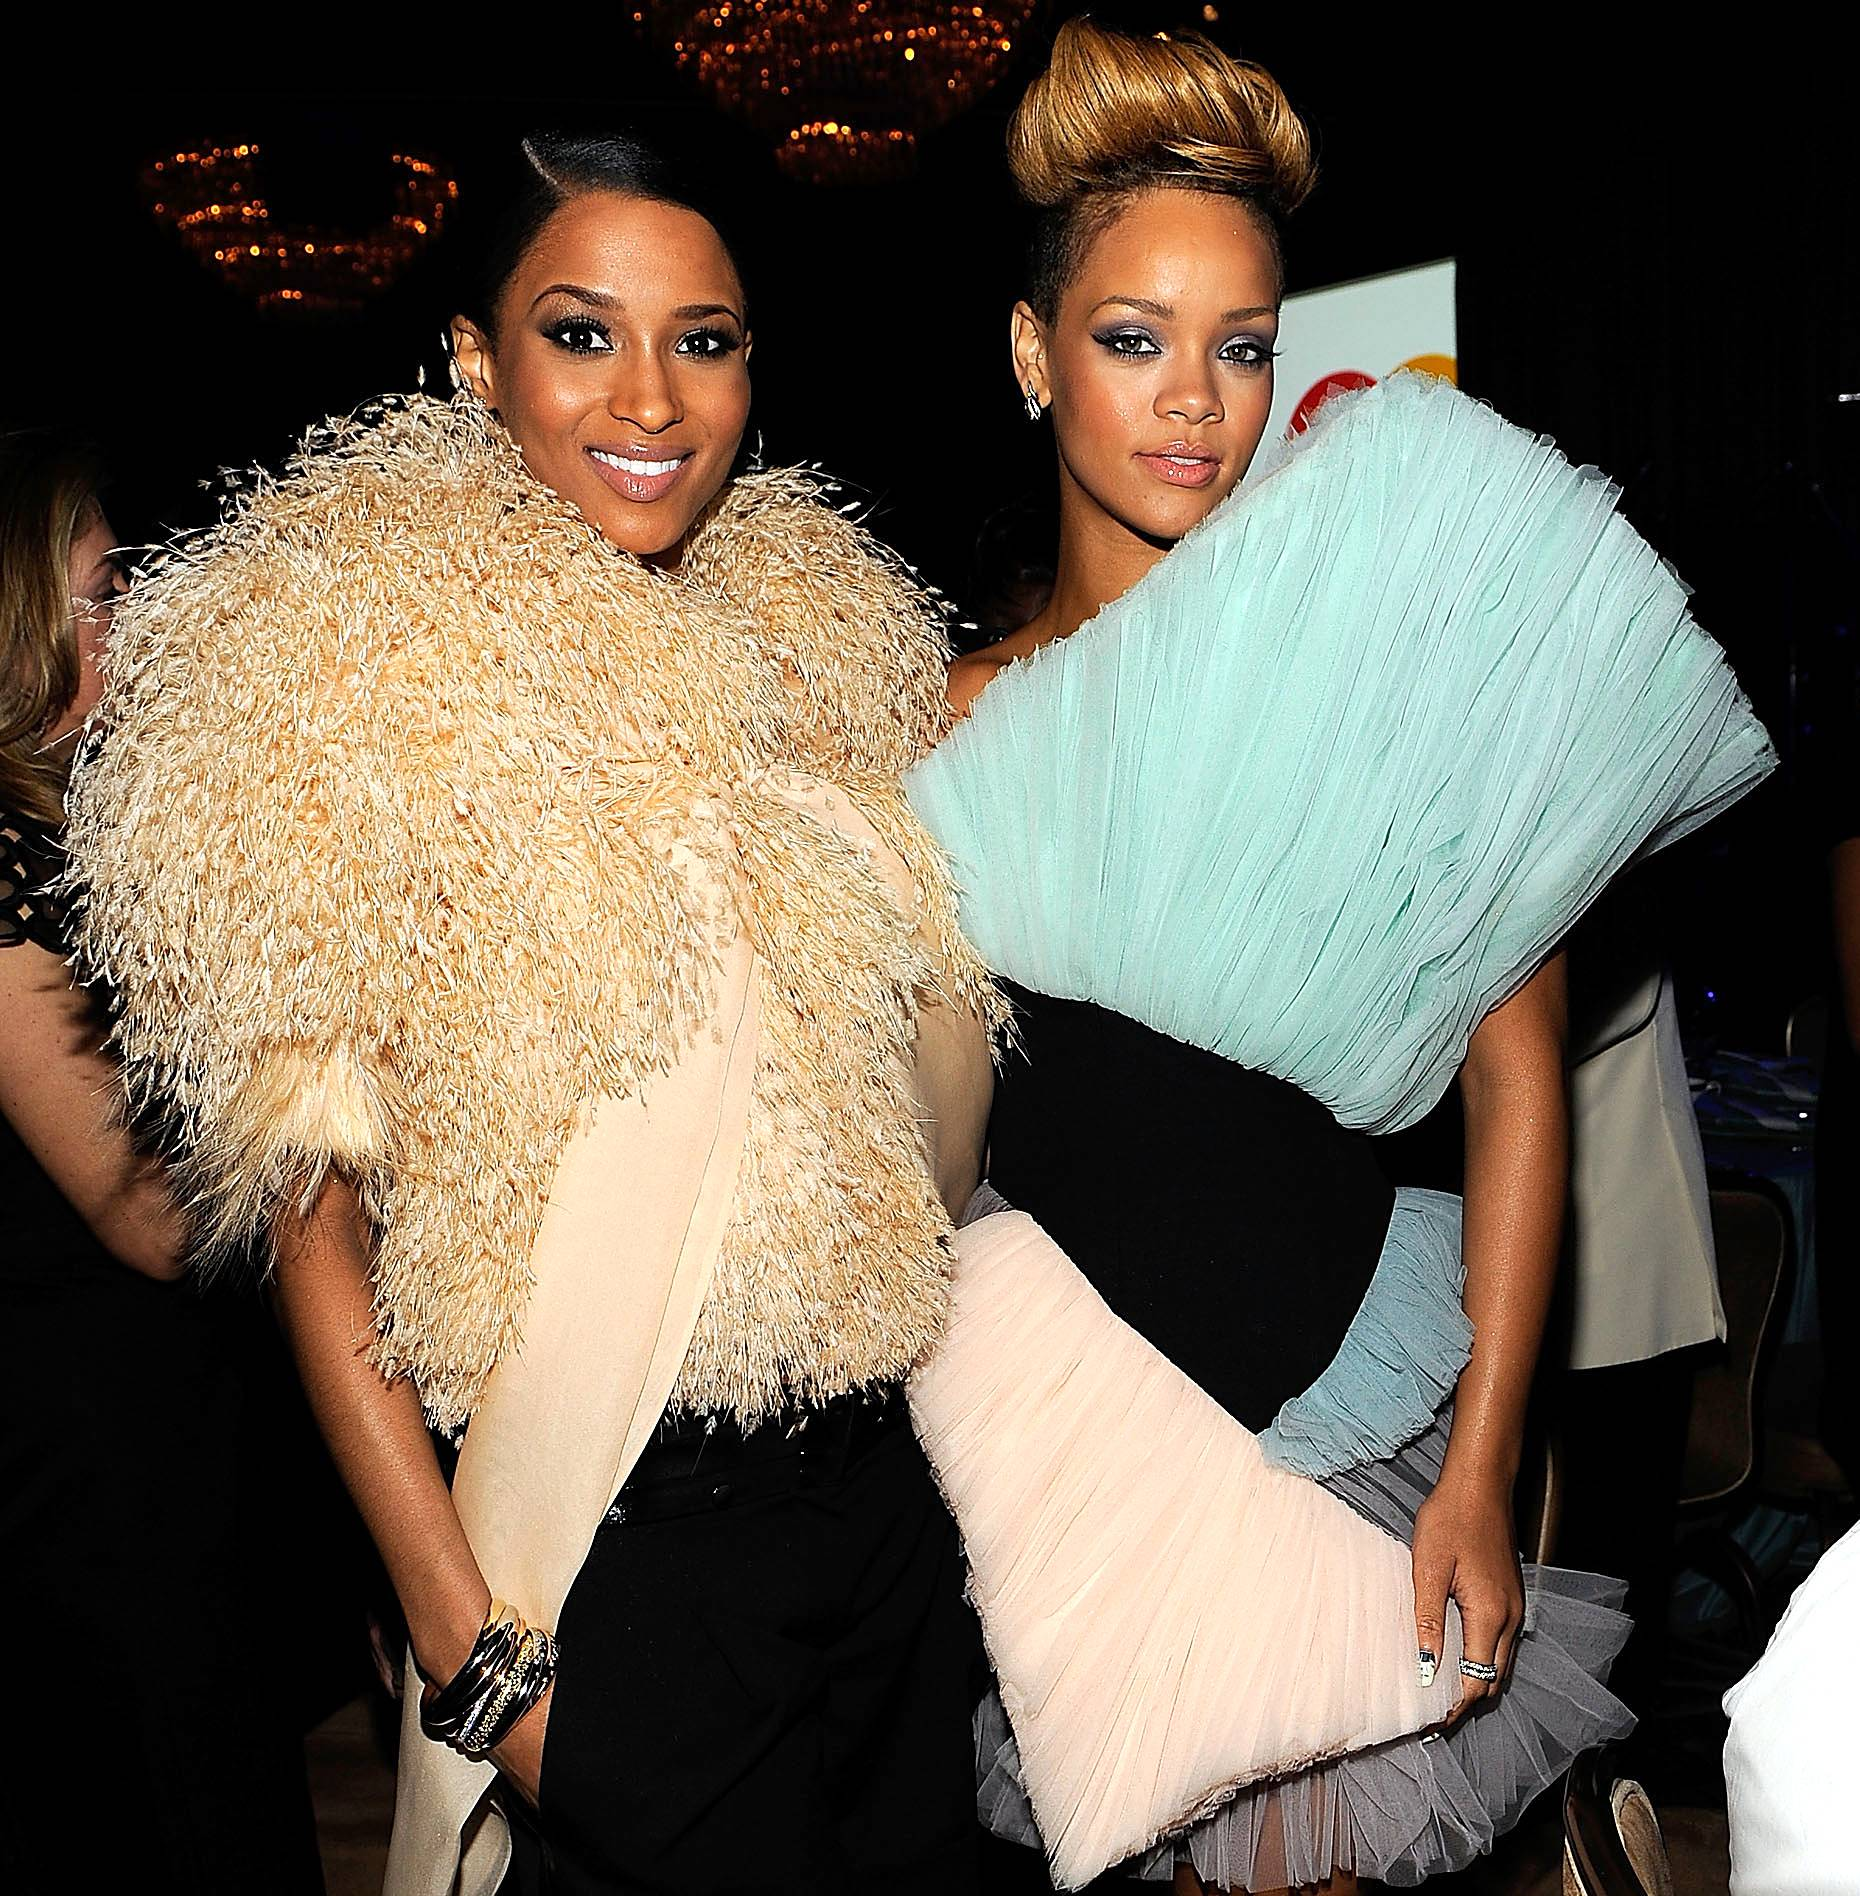 """Rihanna vs. Ciara: The R & Beef That Keeps on Giving - Once upon a time in the land of R&B, two divas didn't see eye to eye, but they buried the hatchet... until now. In the last few weeks Rihanna has been going at Ciara and CiCi has been striking back with positive comments and saying that this """"beef"""" is confusing. Click on to see the ongoing saga of Rihanna vs. Ciara: The R & Beef That Keeps on Giving! (Photo: Larry Busacca/Getty Images for NARAS)"""